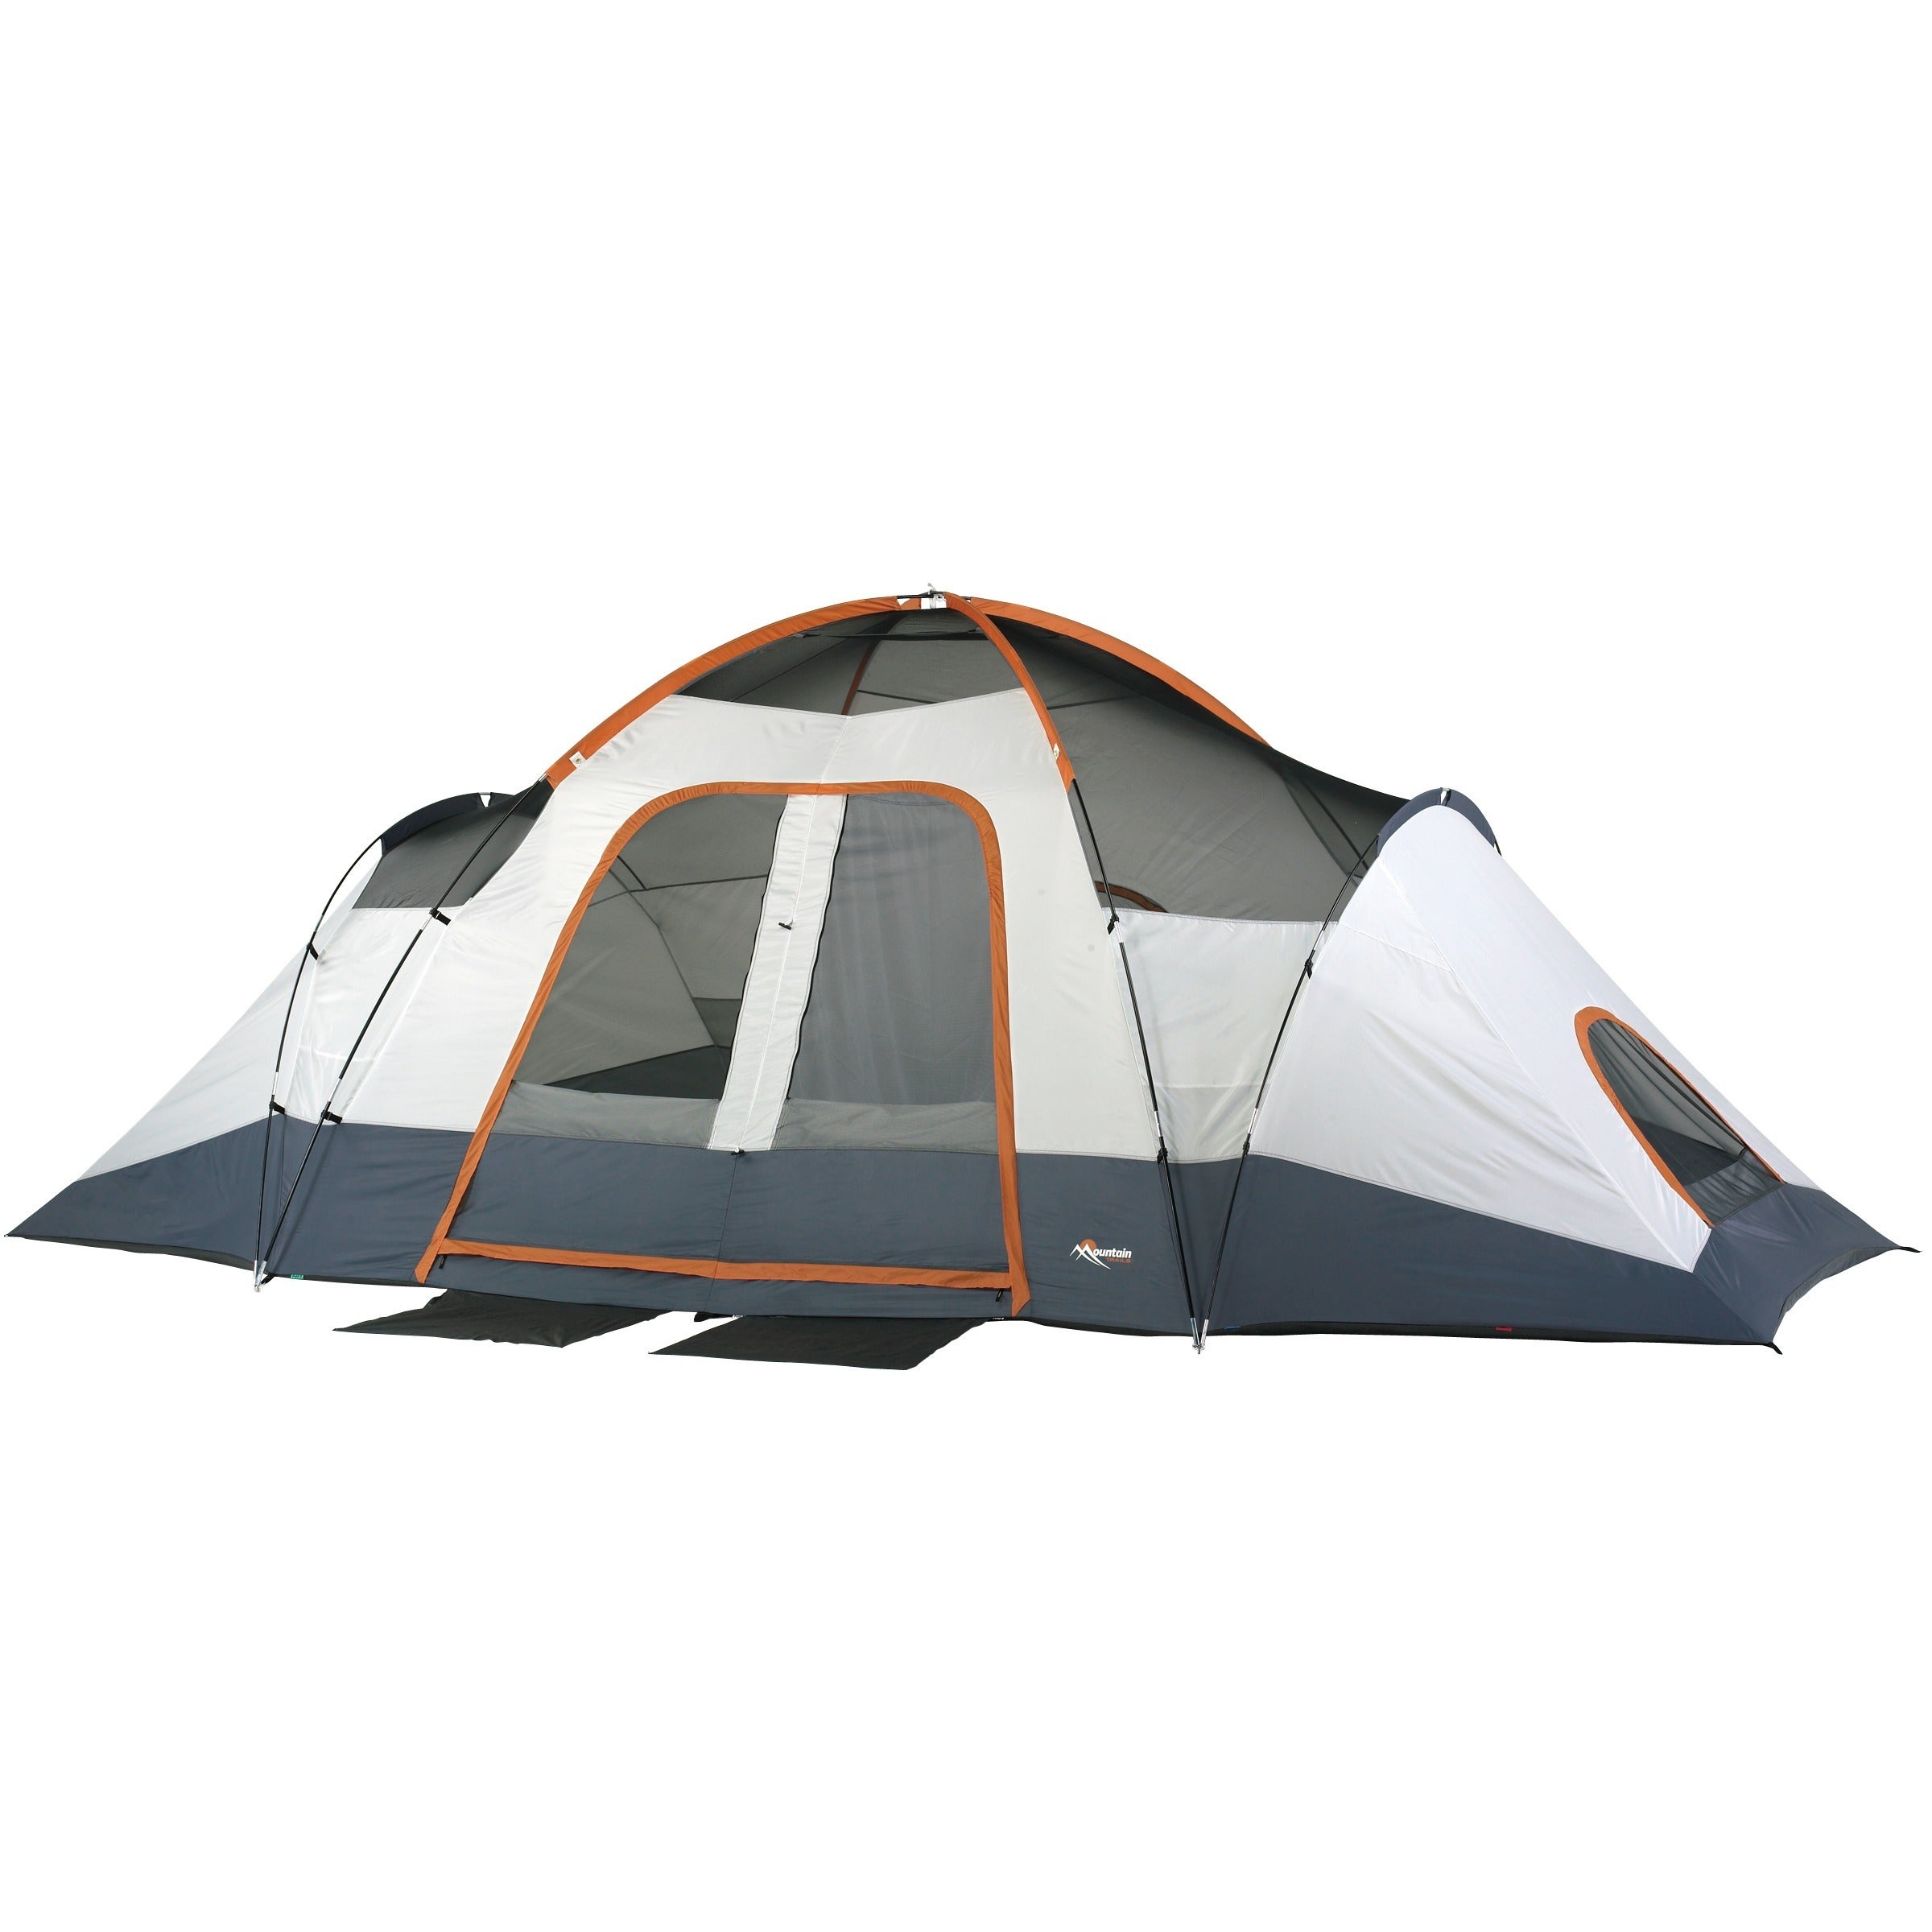 Mountain Trails Grand Pass 9-person 2-room Family Dome Tent - Free Shipping Today - Overstock.com - 14079261  sc 1 st  Overstock.com & Mountain Trails Grand Pass 9-person 2-room Family Dome Tent - Free ...